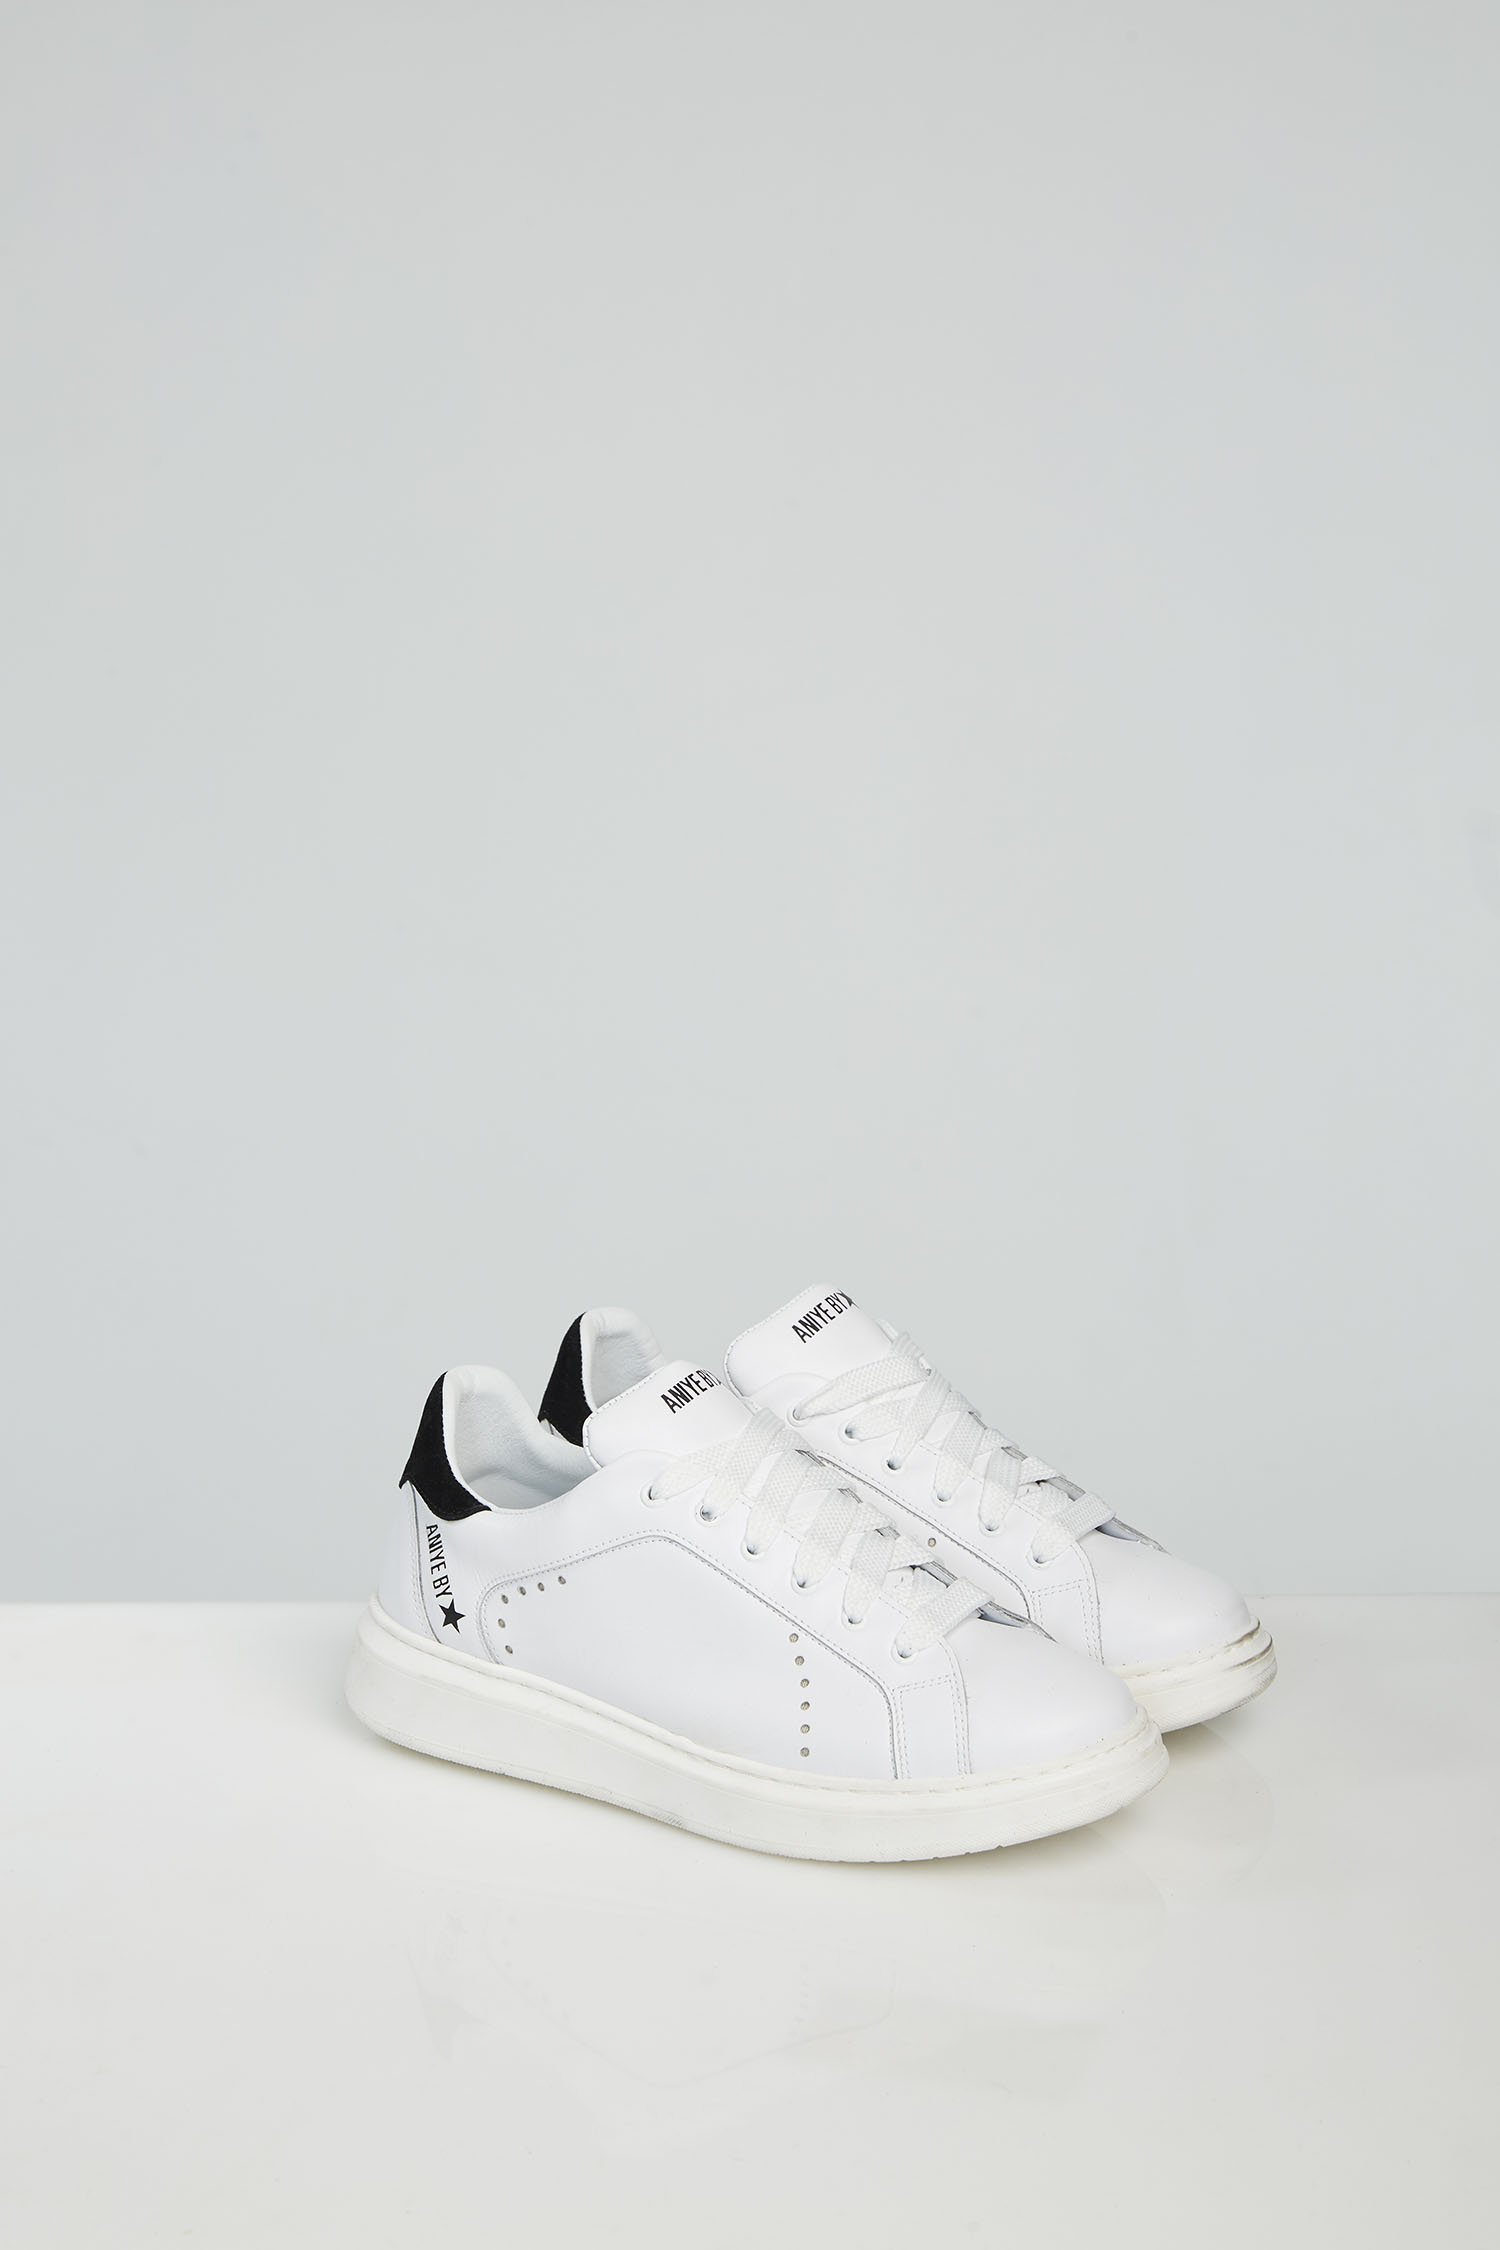 SHOPPING ON LINE ANIYE BY SNEAKER OVER PYTHON  COLLECTION WOMEN'S SPRING SUMMER 2021